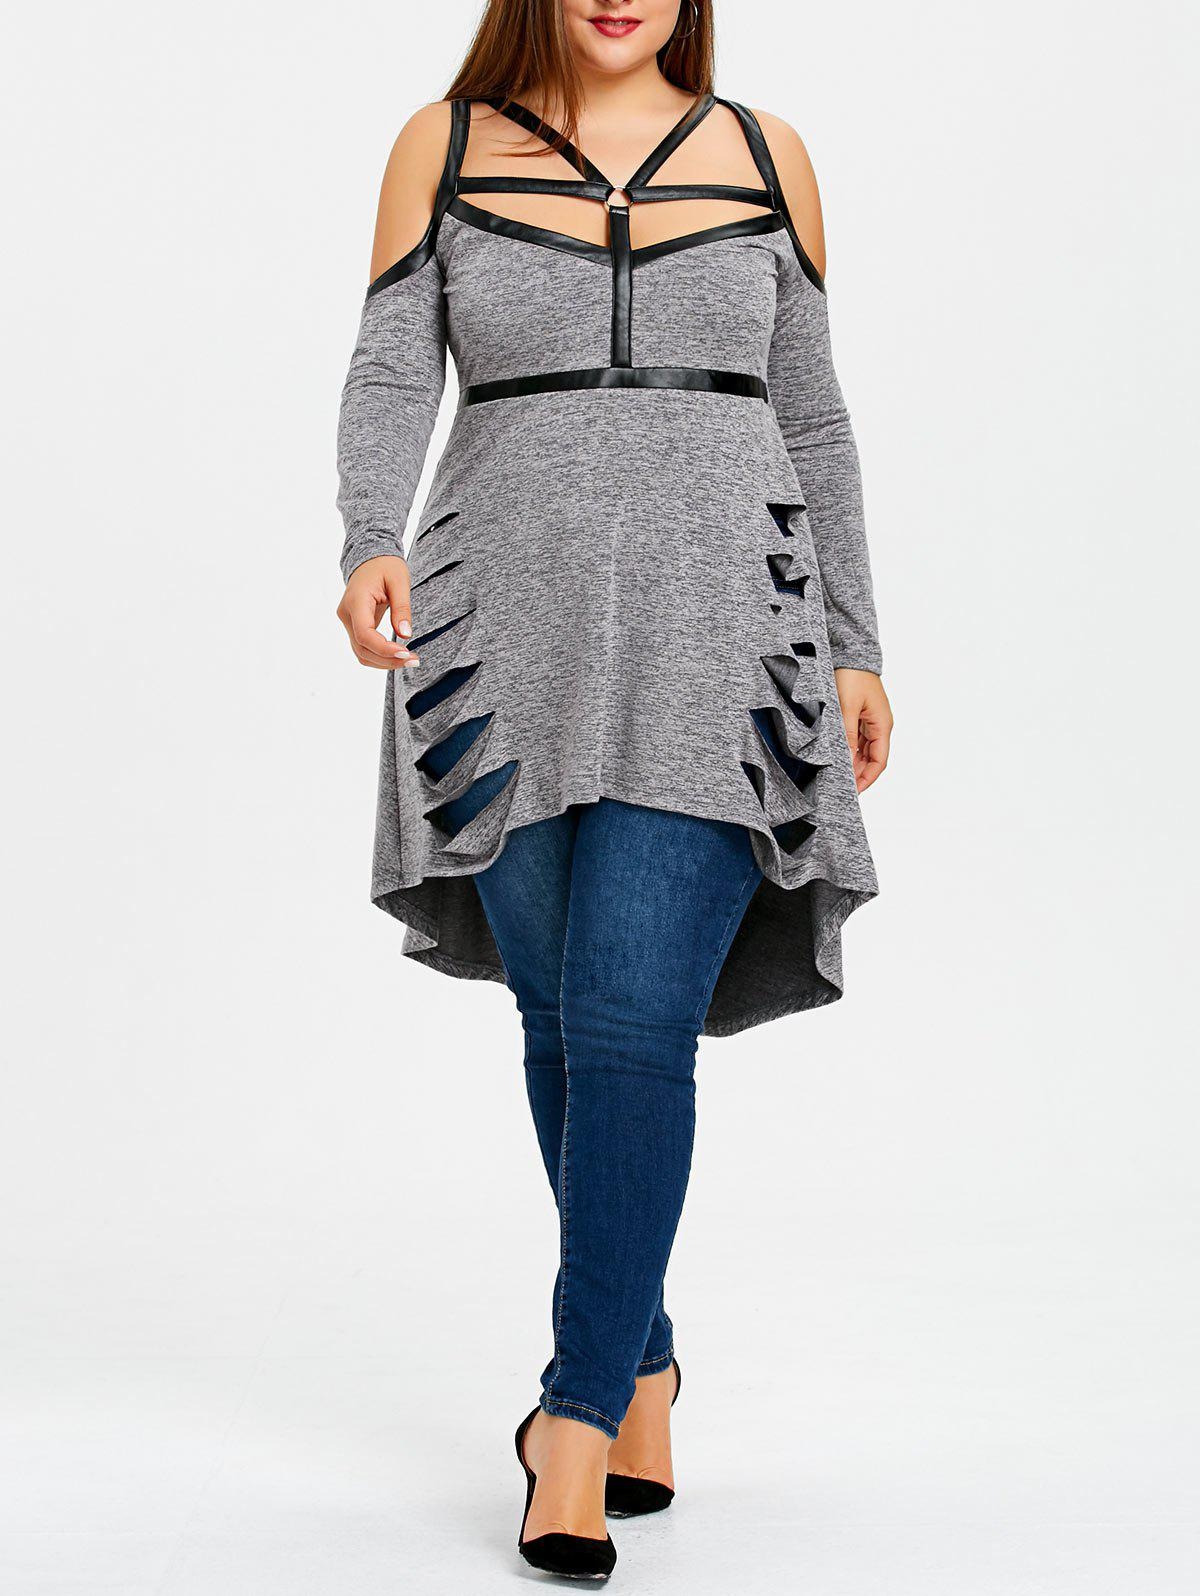 Plus Size Ripped Strappy High Low Long Top - GRAY 5XL